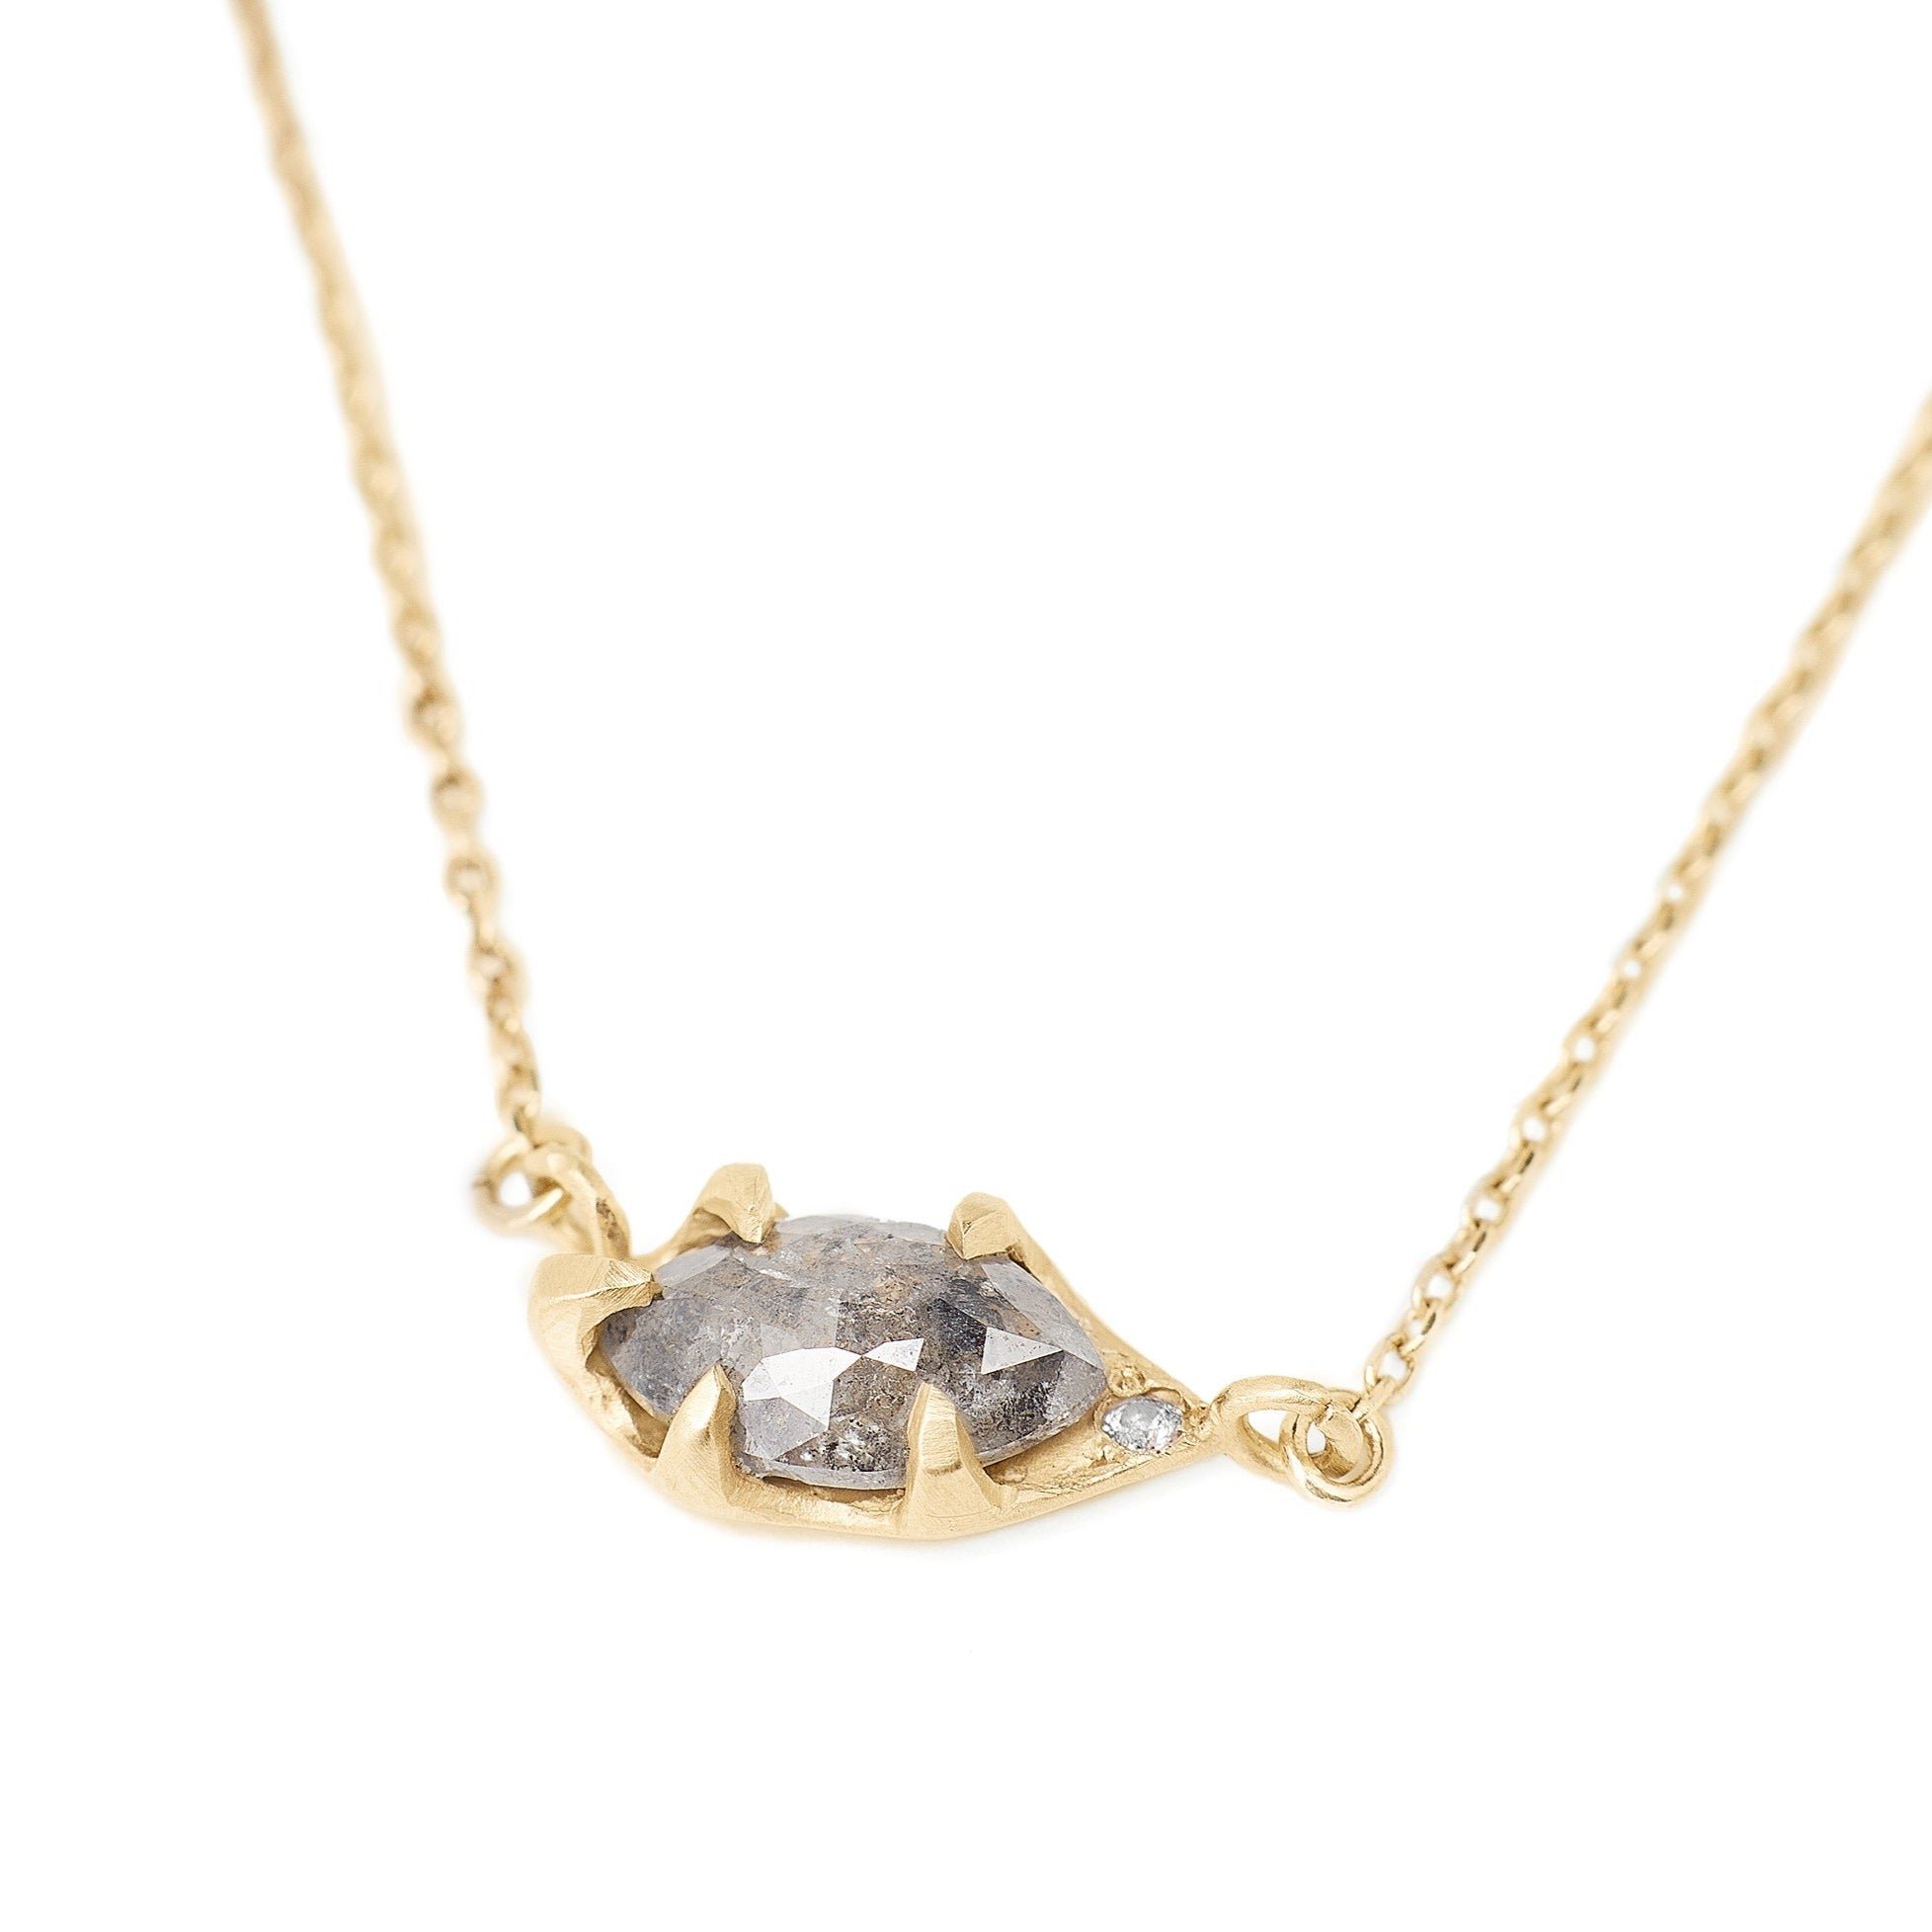 Salt and pepper rose cut diamond necklace set in 14kt gold. Diamond necklace incorporated into the delicate chain. Simple rose cut diamond necklace with a hidden pink diamond accent.